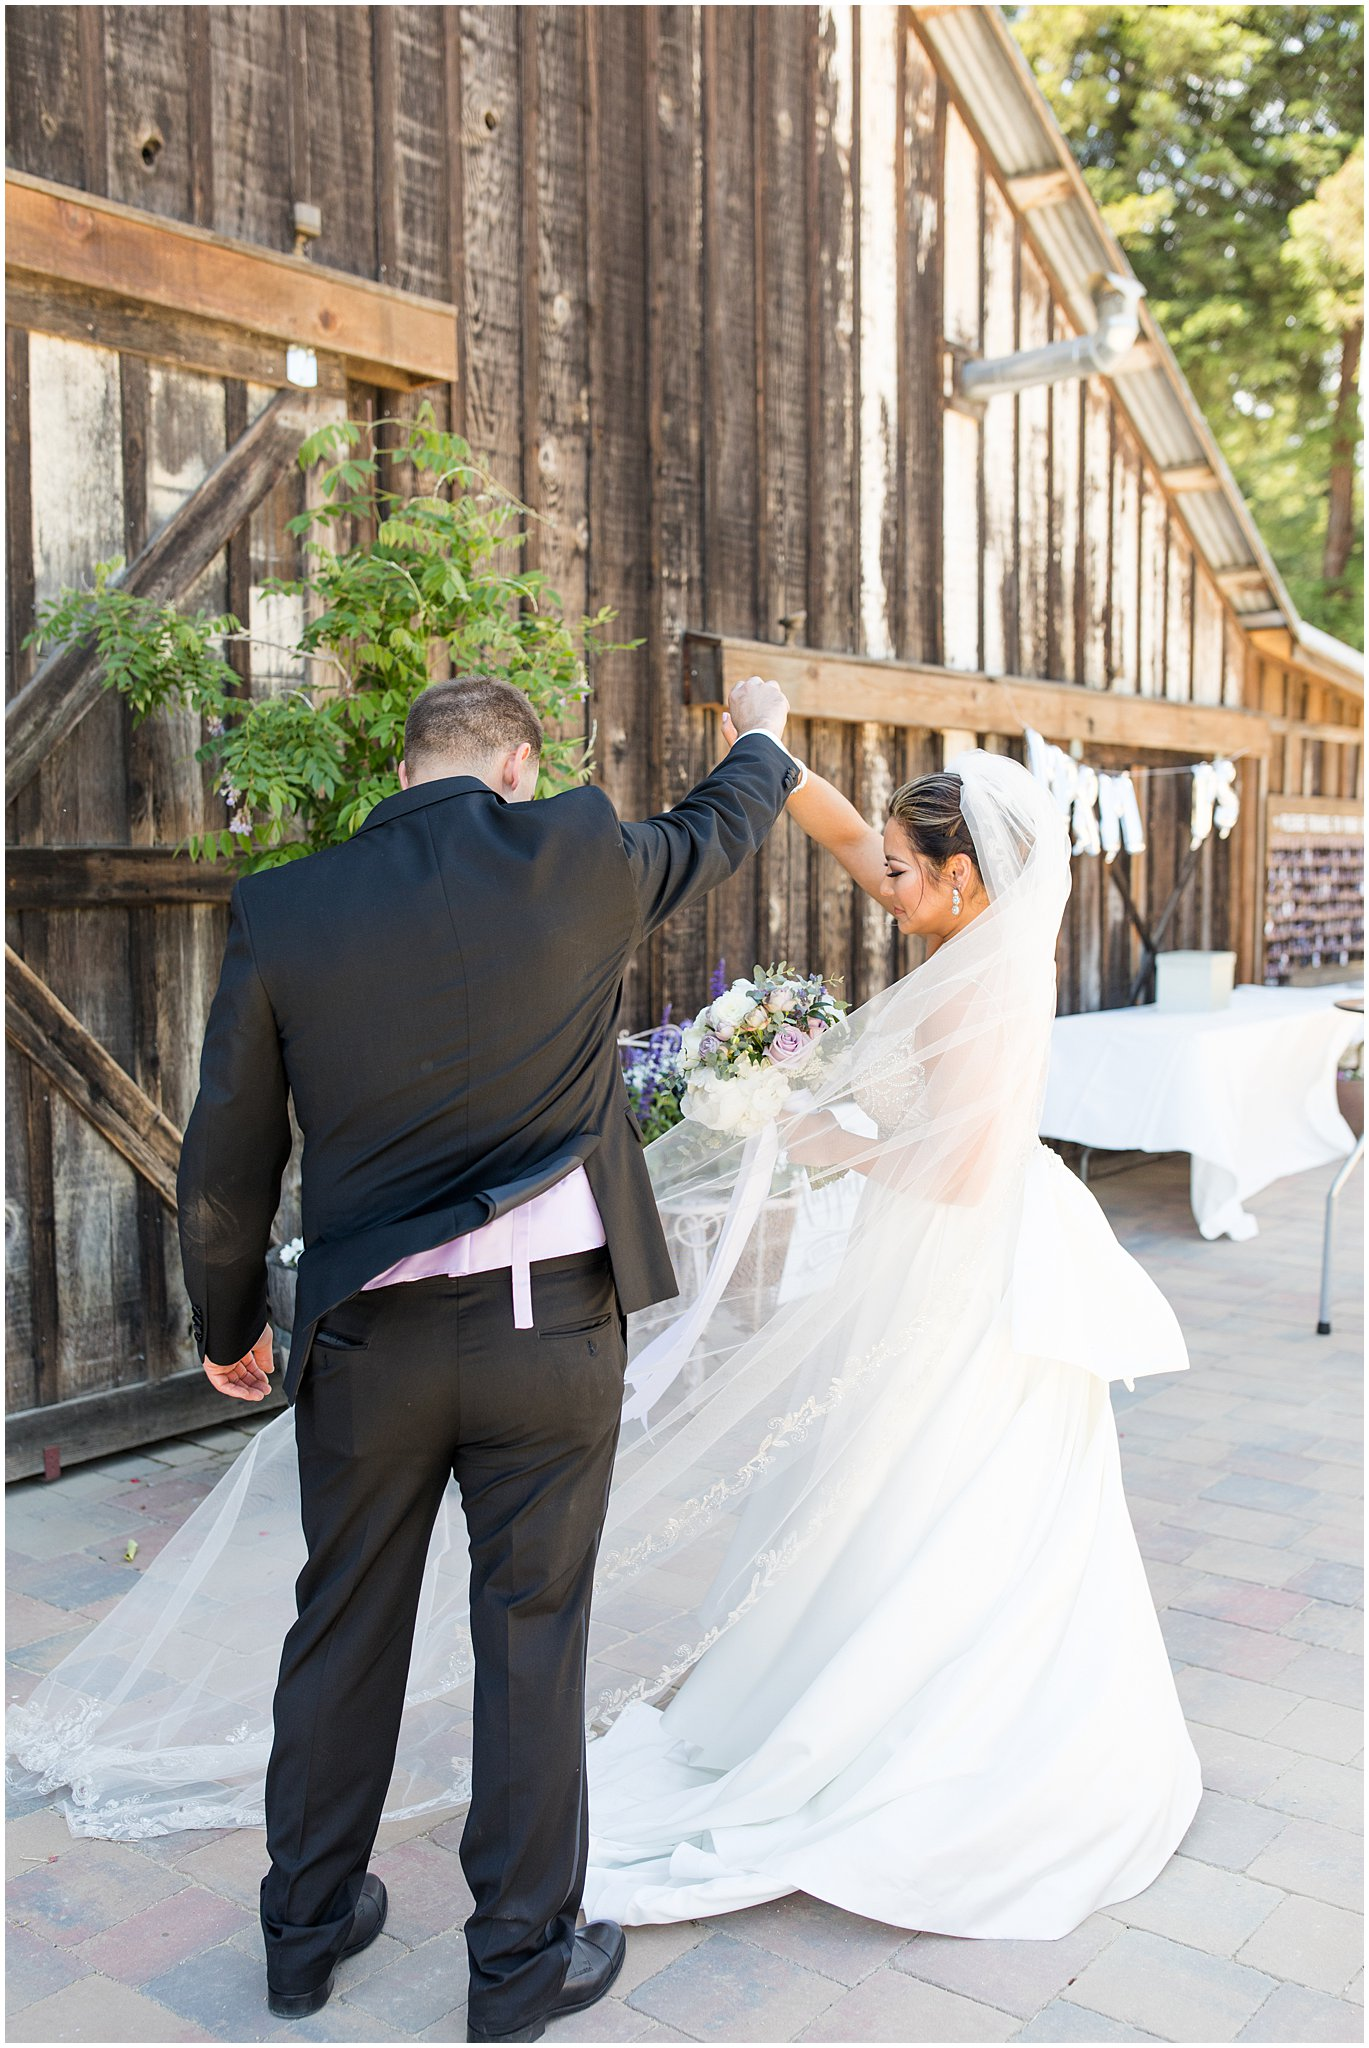 2019 wedding san juan bautista hacienda de leal vineyards bay area wedding photographer_0020.jpg